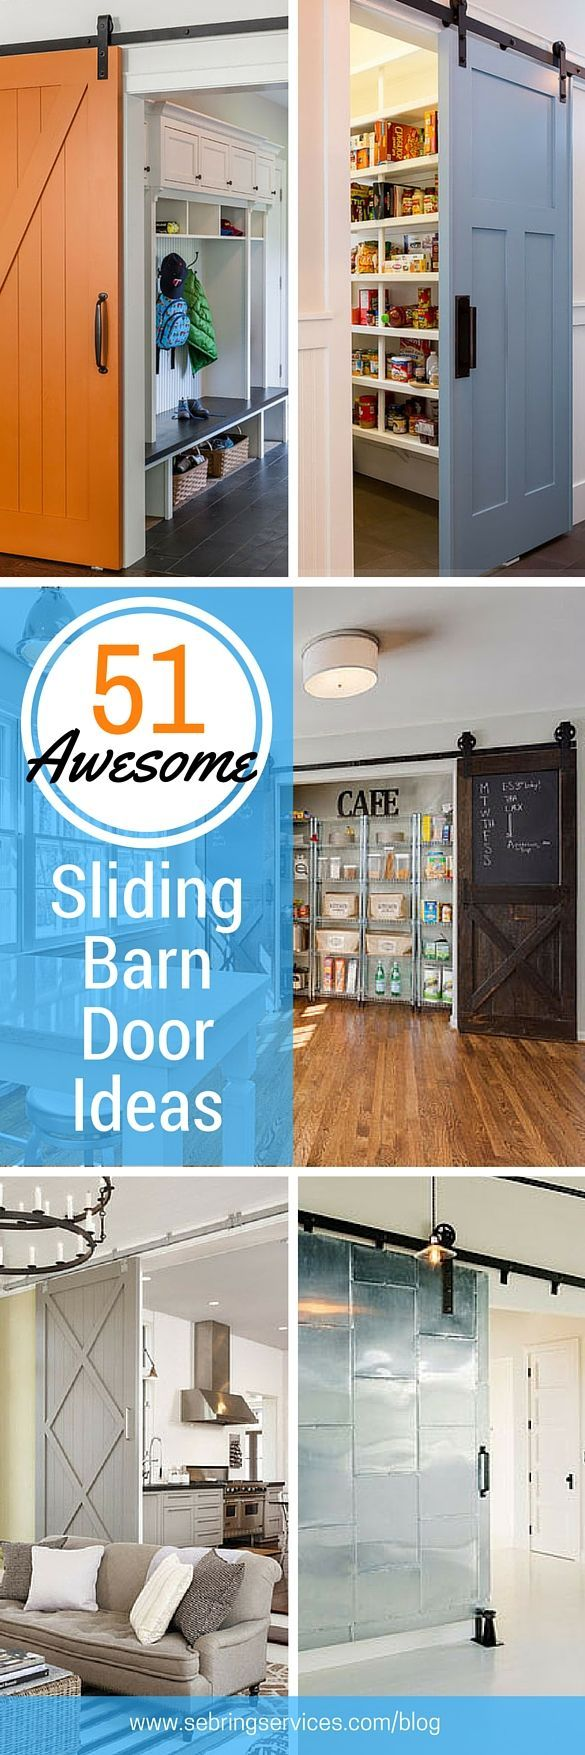 Barn doors are not just for barns anymore. From the countryside barns, these wide sliding doors have entered the house to become popular interior décor pieces. From cozy bedrooms to rustic home offices and perfect room dividers, barn-style doors are all the rage for homeowners.